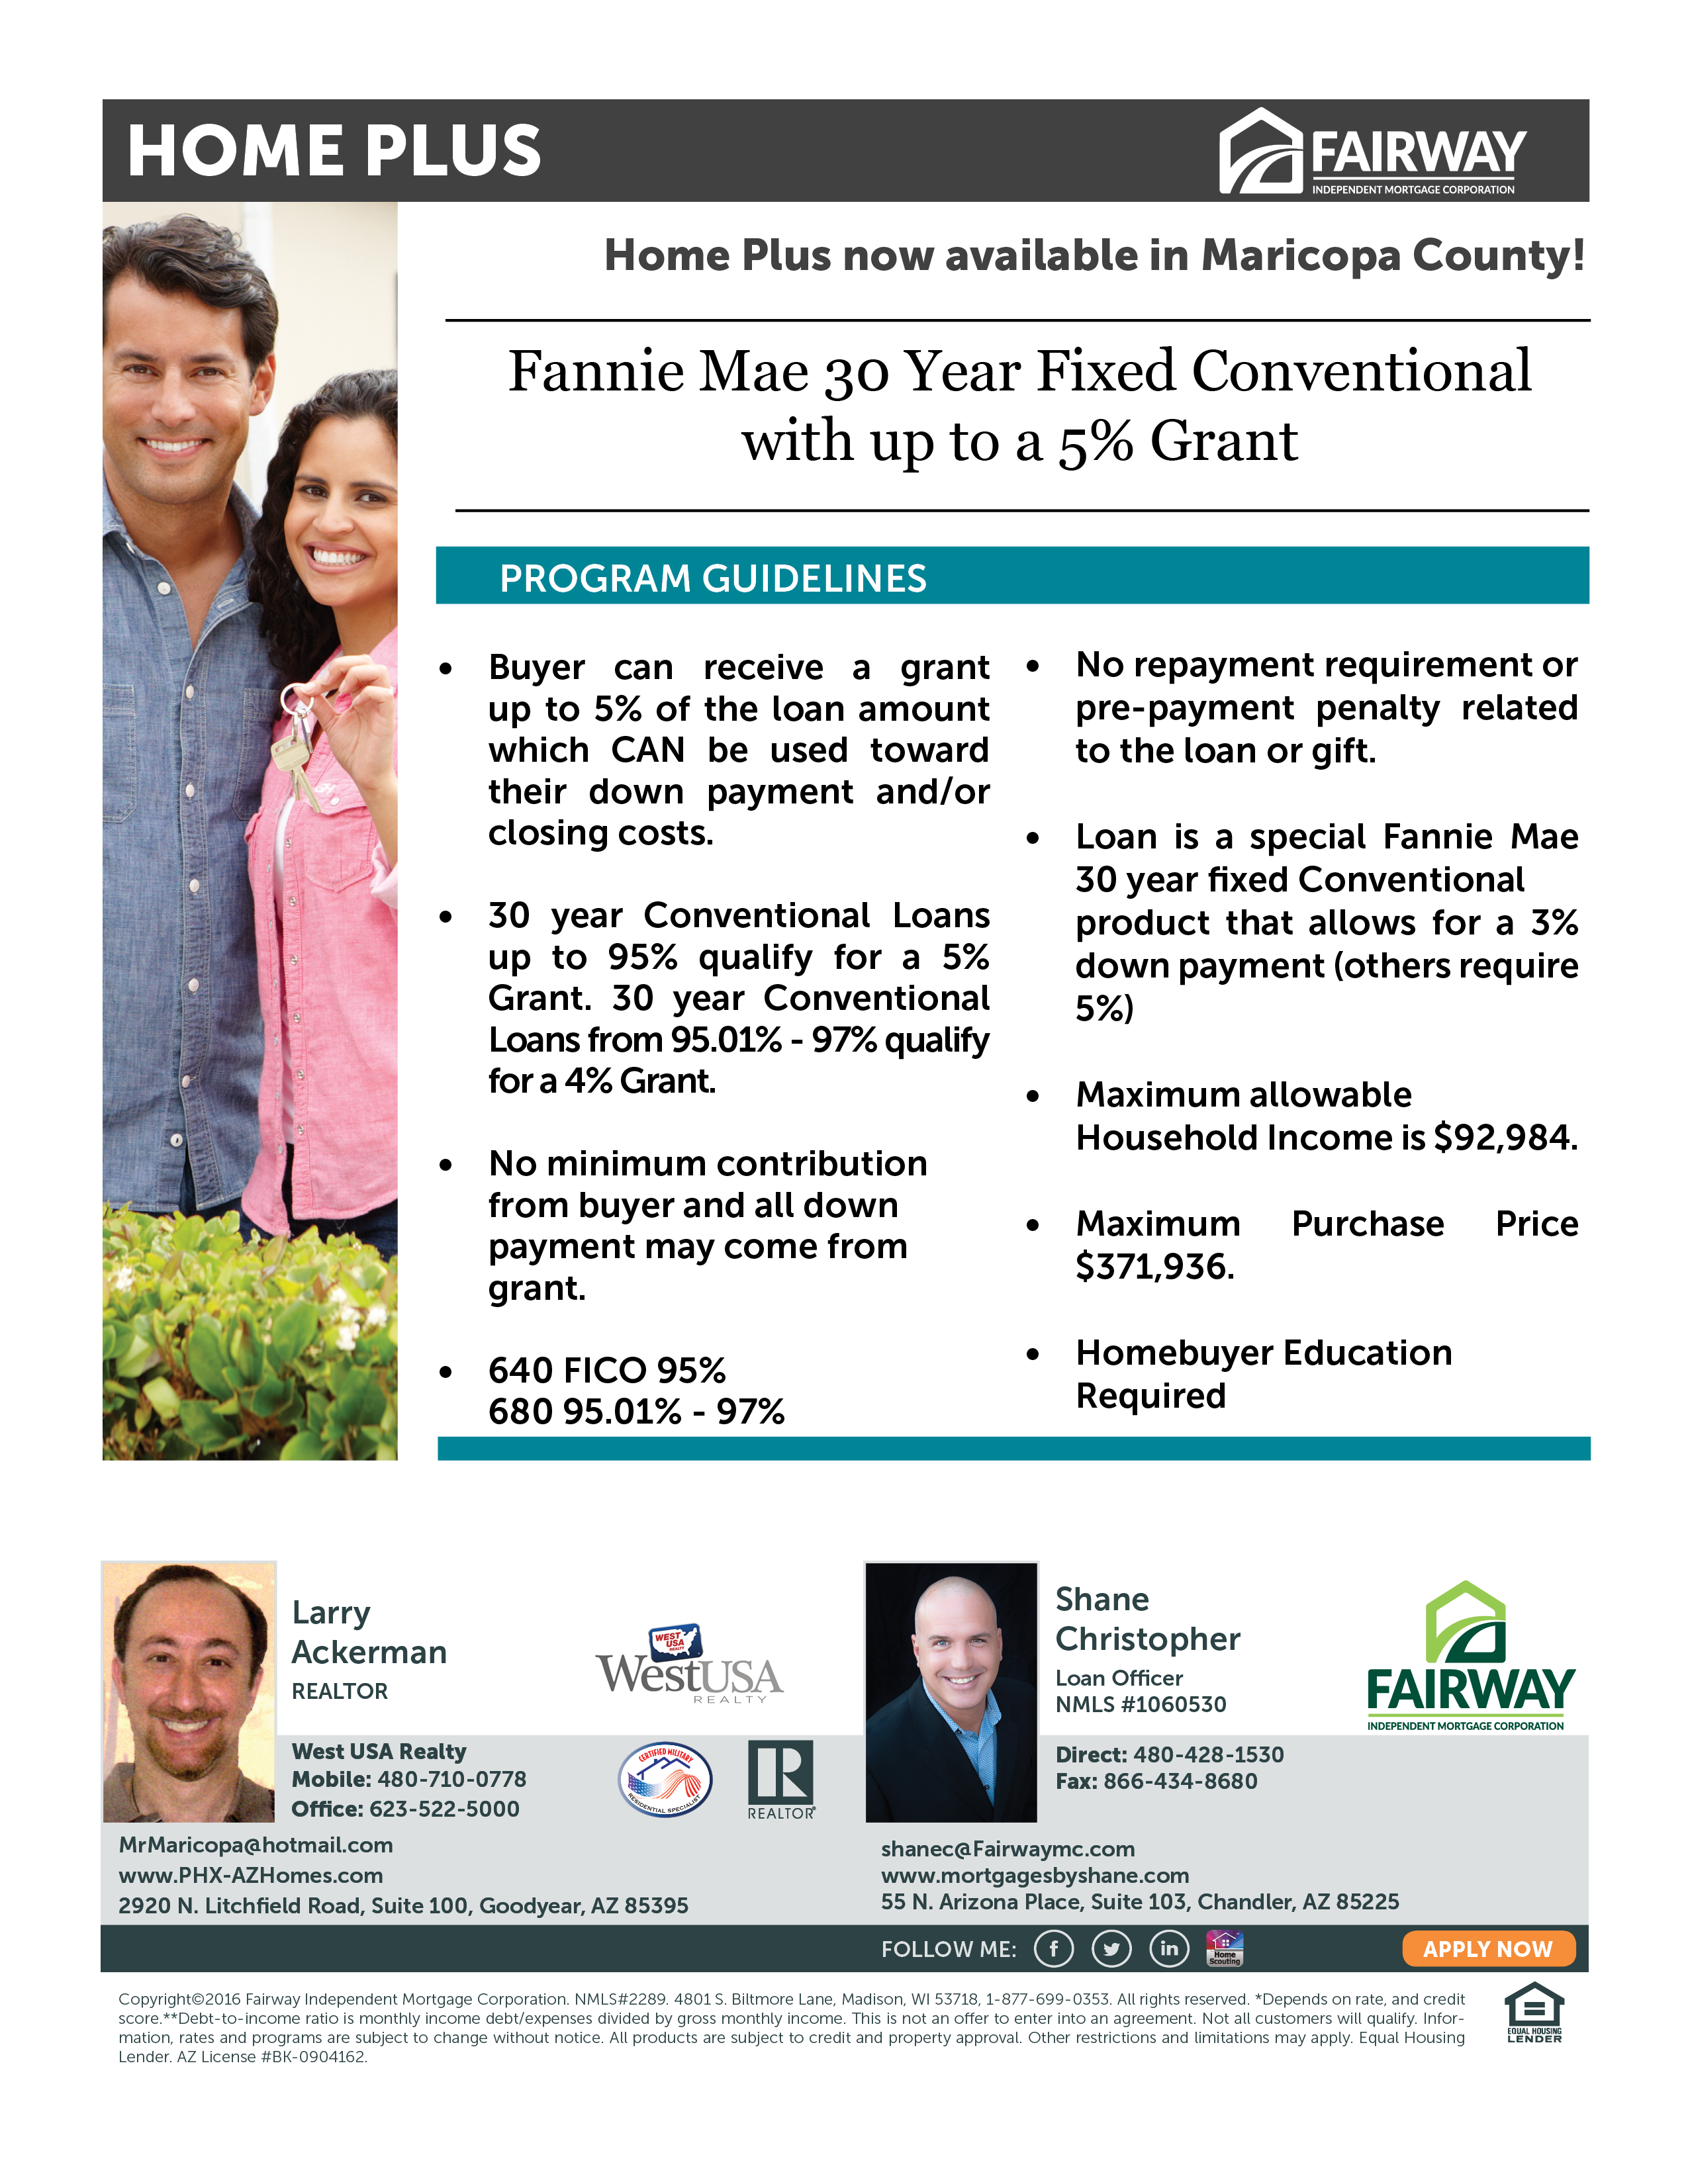 HOME PLUS - DOWN PAYMENT ASSISTANCE PROGRAM